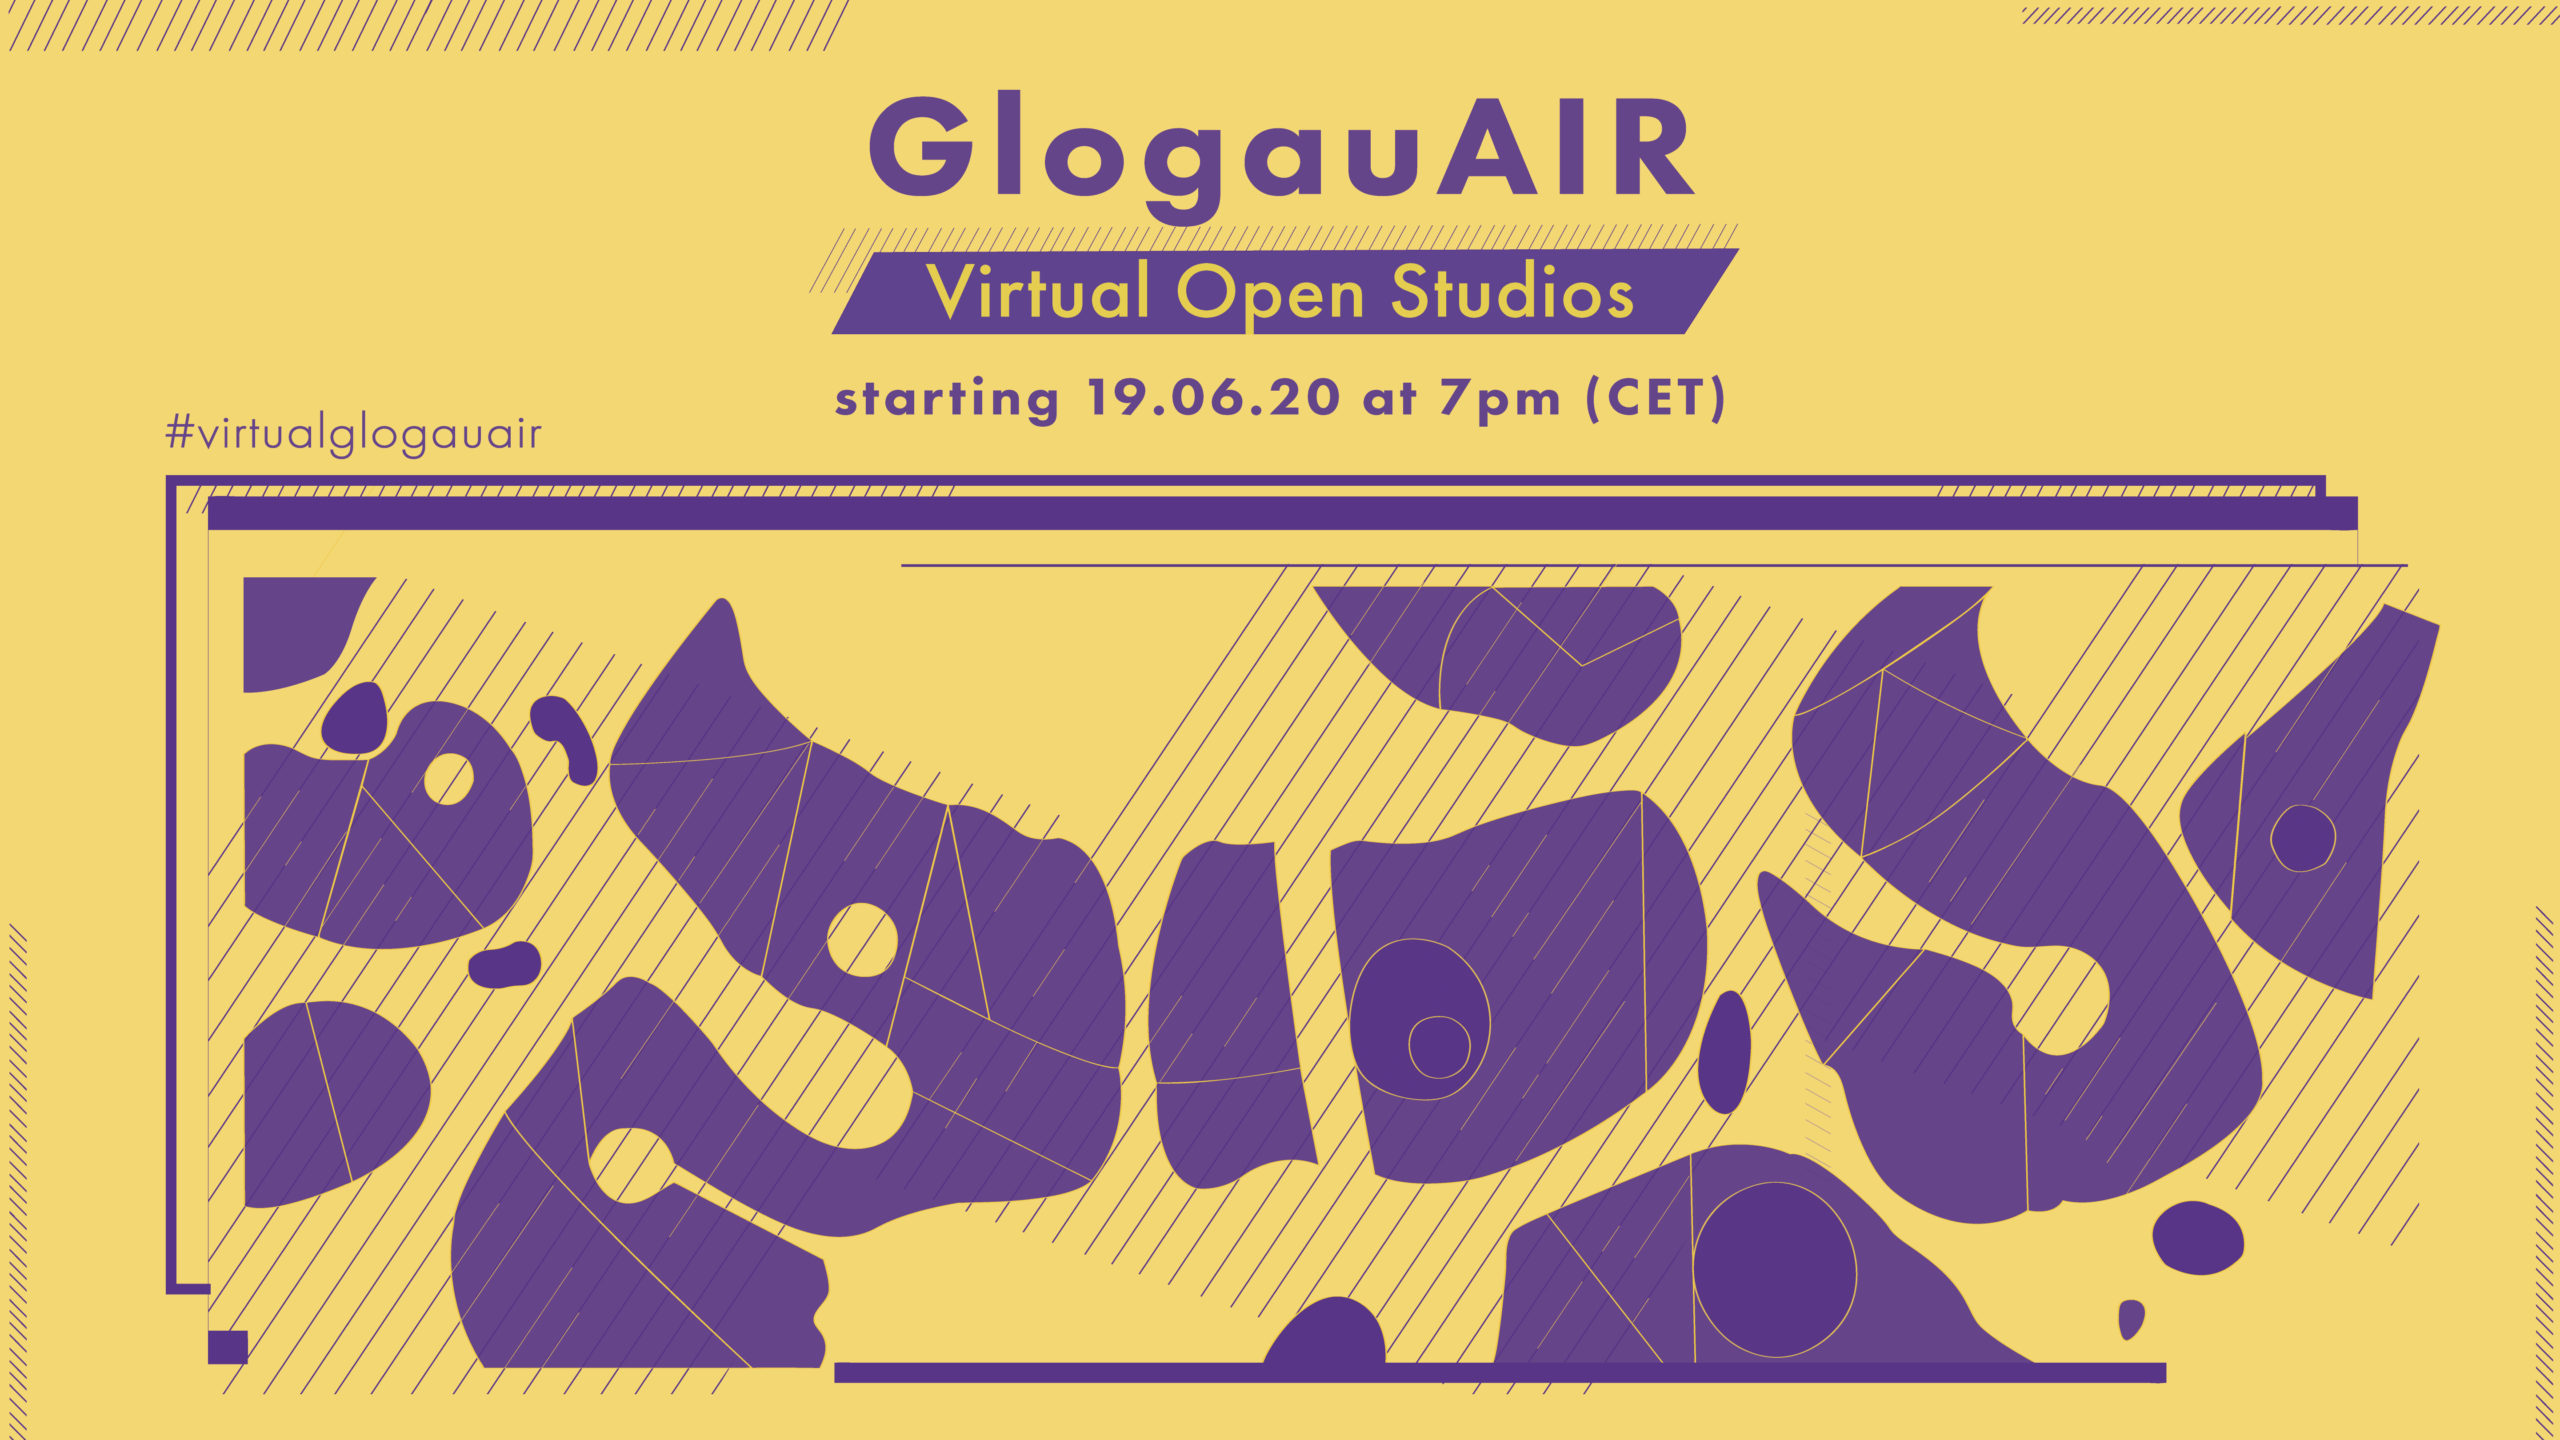 002-Website_Virtual-Open-Studios-June2020